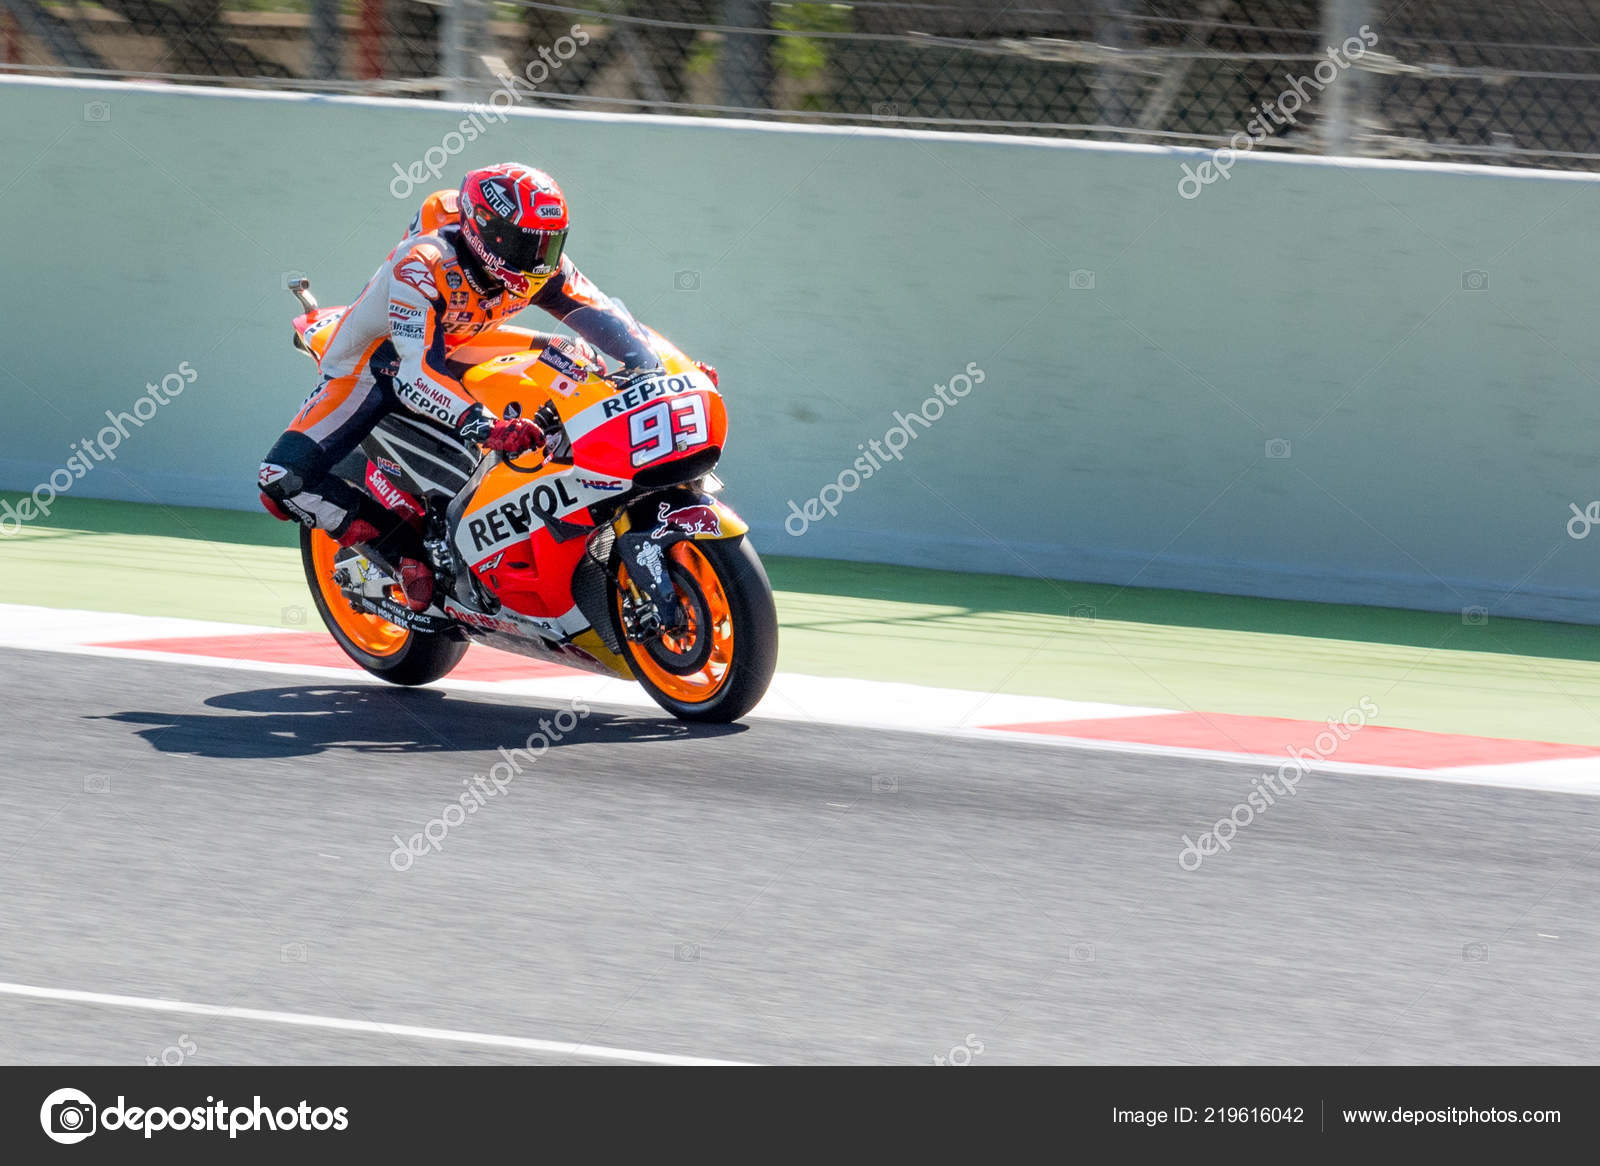 773101949e6bf BARCELONA - SPAIN, JUNE 3: Valentino Rossi at 2016 Monster Energy MotoGP of  Catalunya at Barcelona circuit on June 3, 2016– Stock Editorial Photography